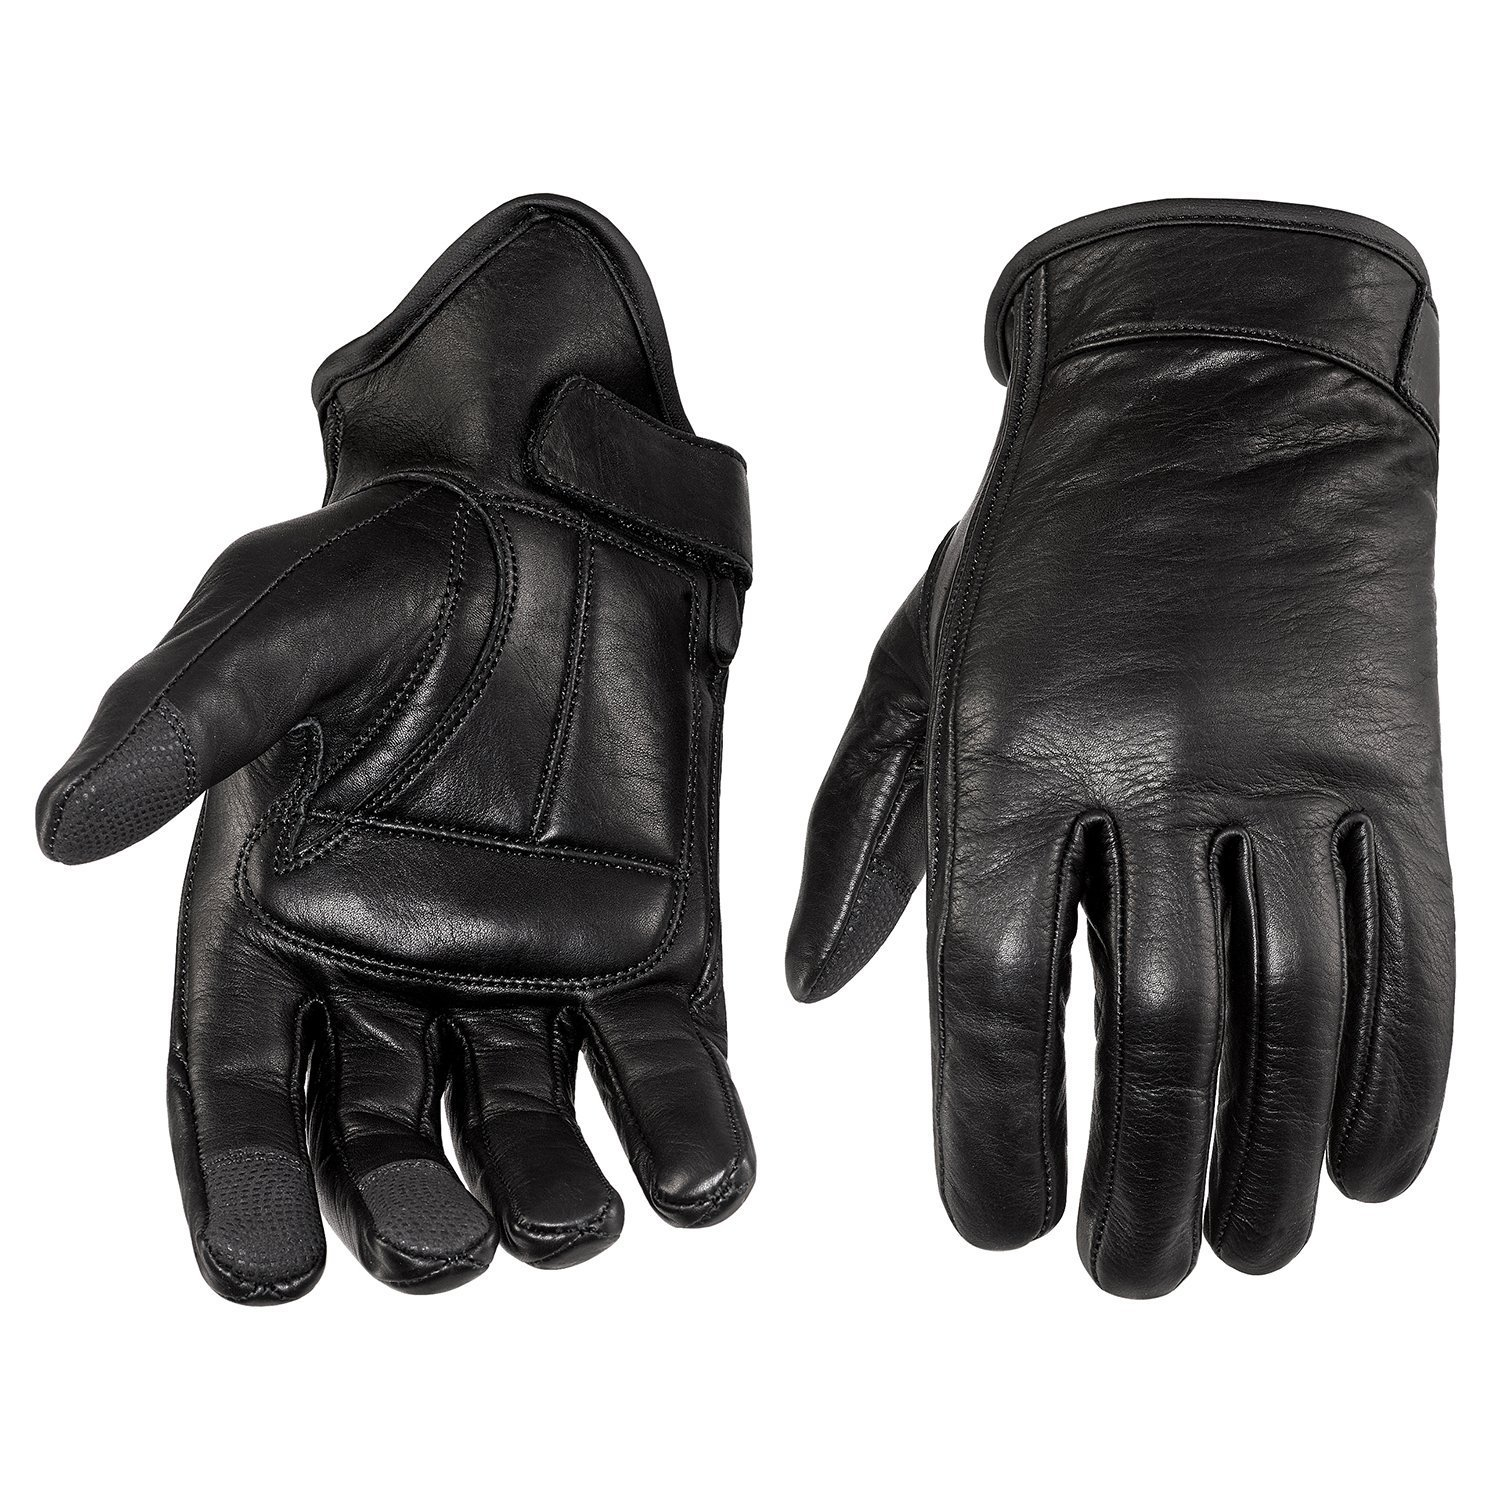 NEW PRODUCT Viking Cycle Men's Premium Leather Standard Motorcycle Cruiser Gloves (Large)